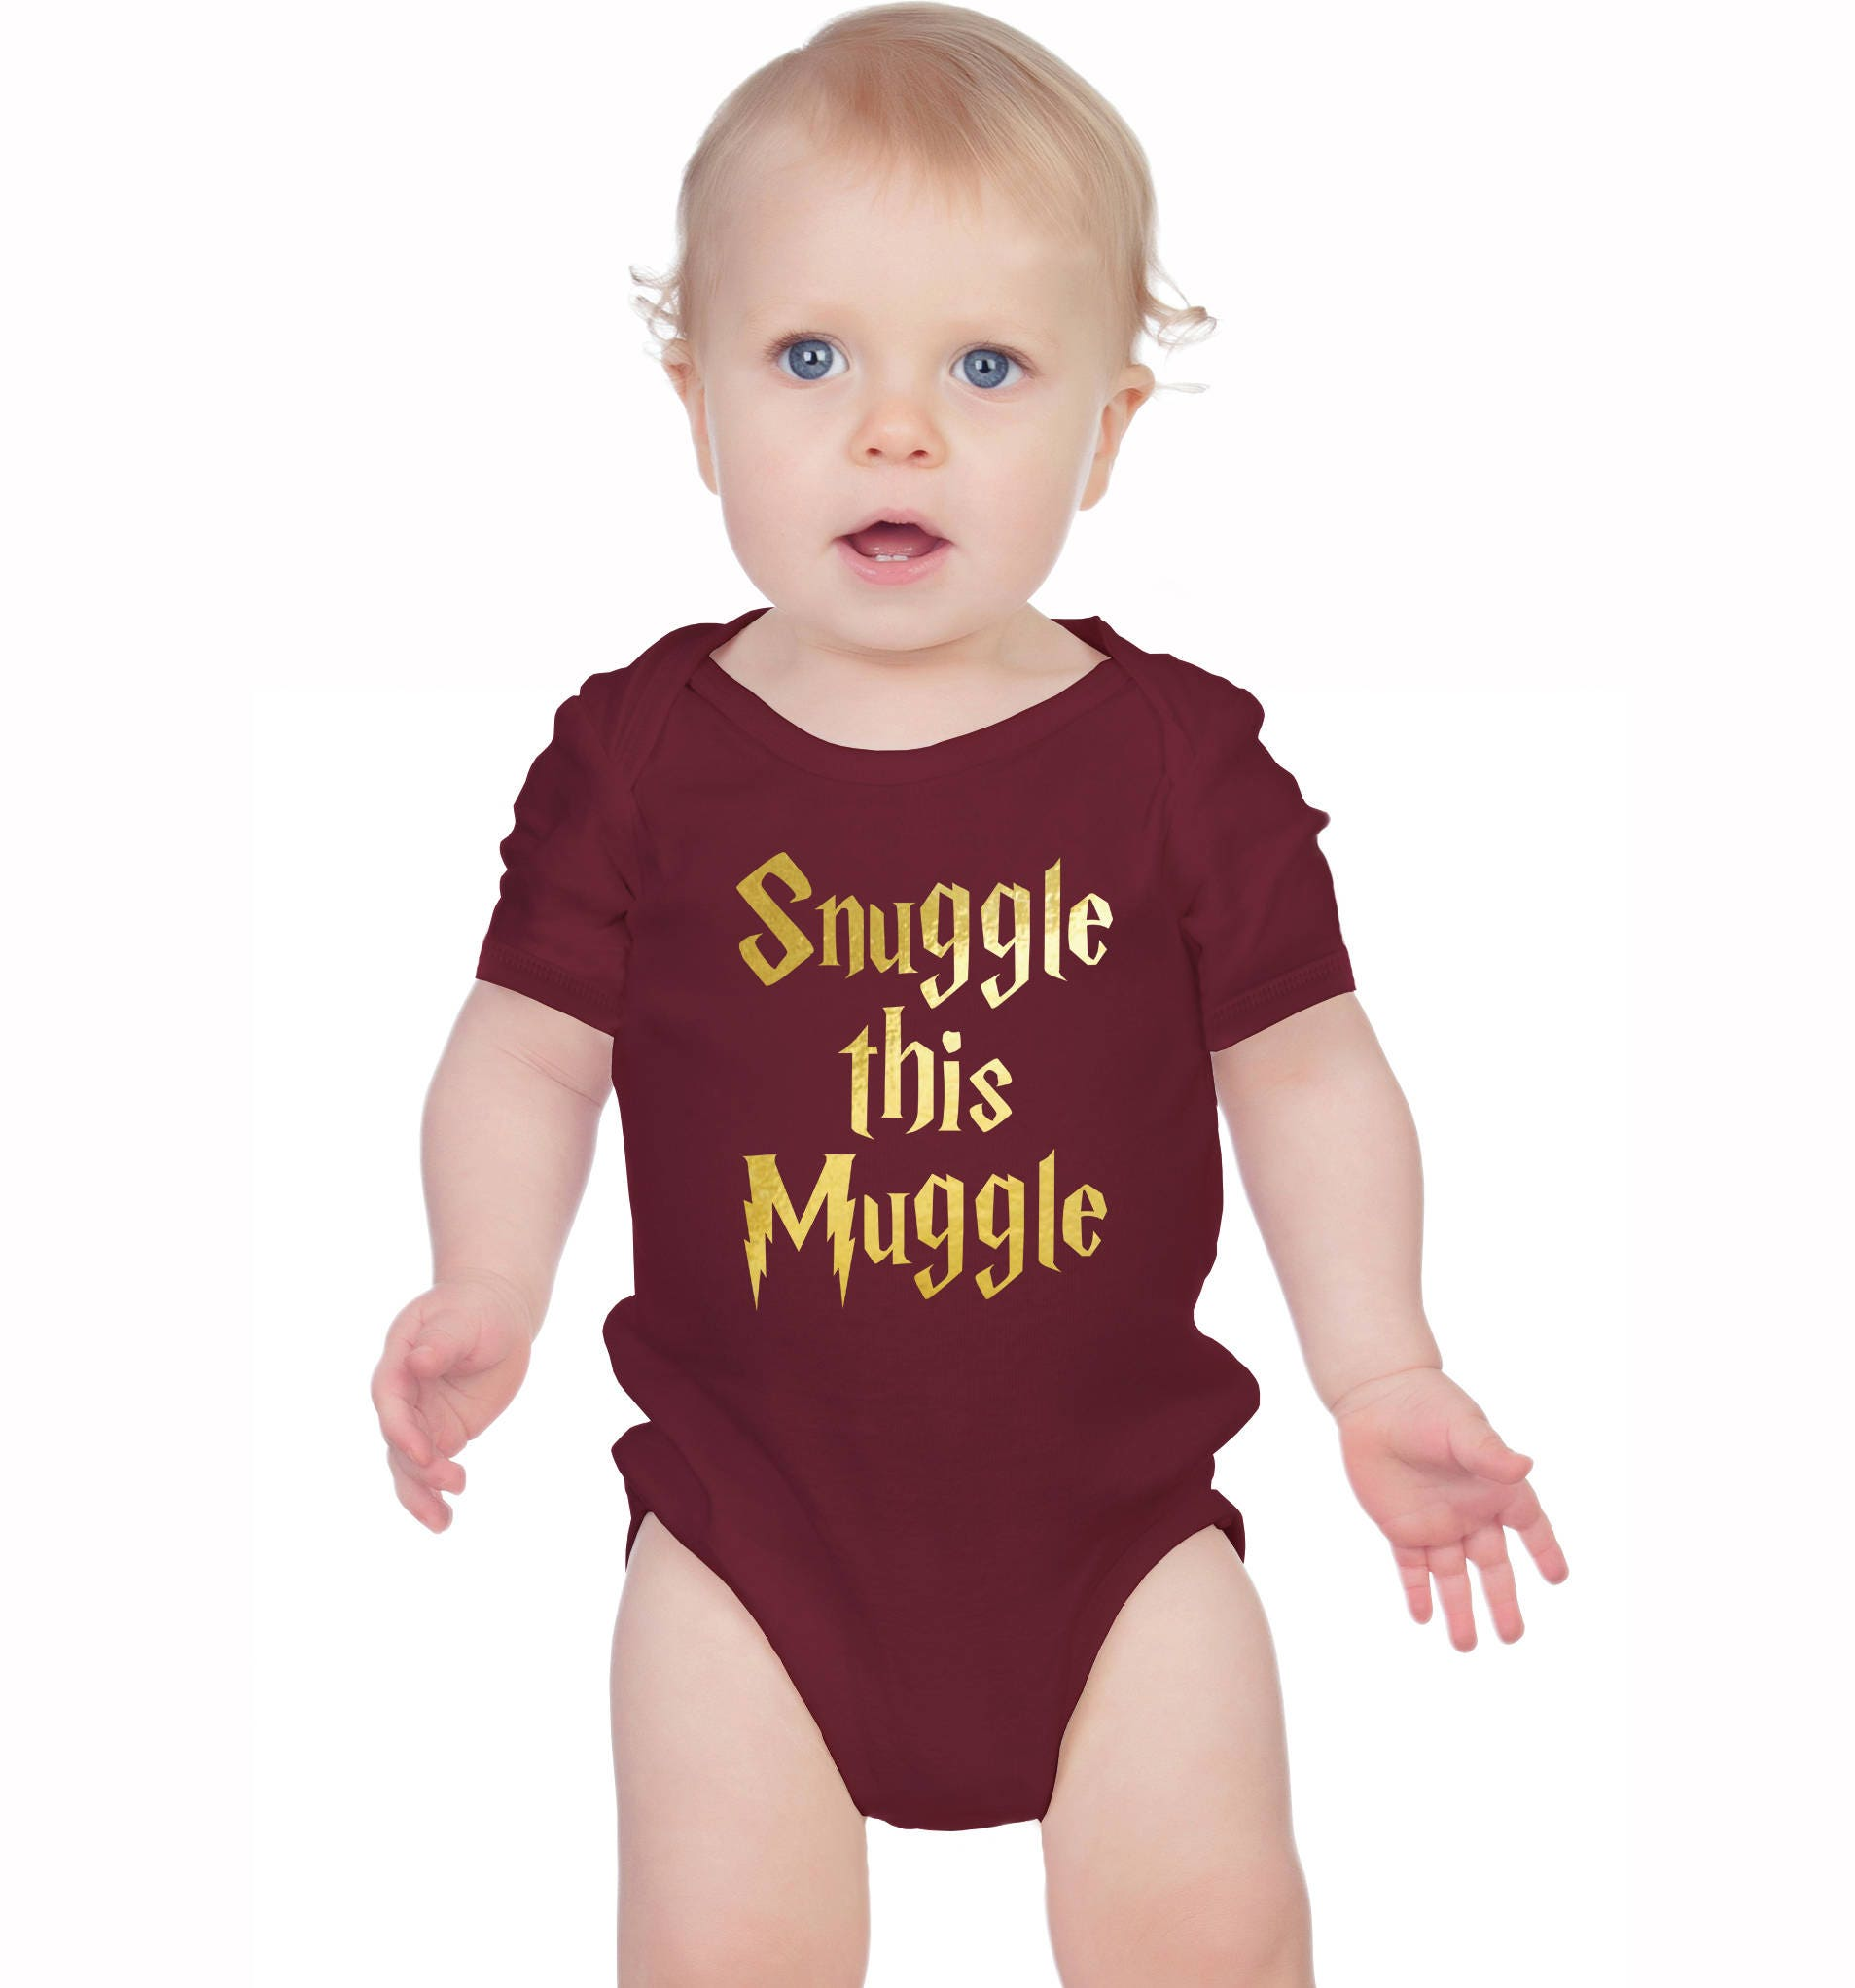 Harry Potter inspired burgundy bodysuit onesie with gold text Snuggle this Muggle.